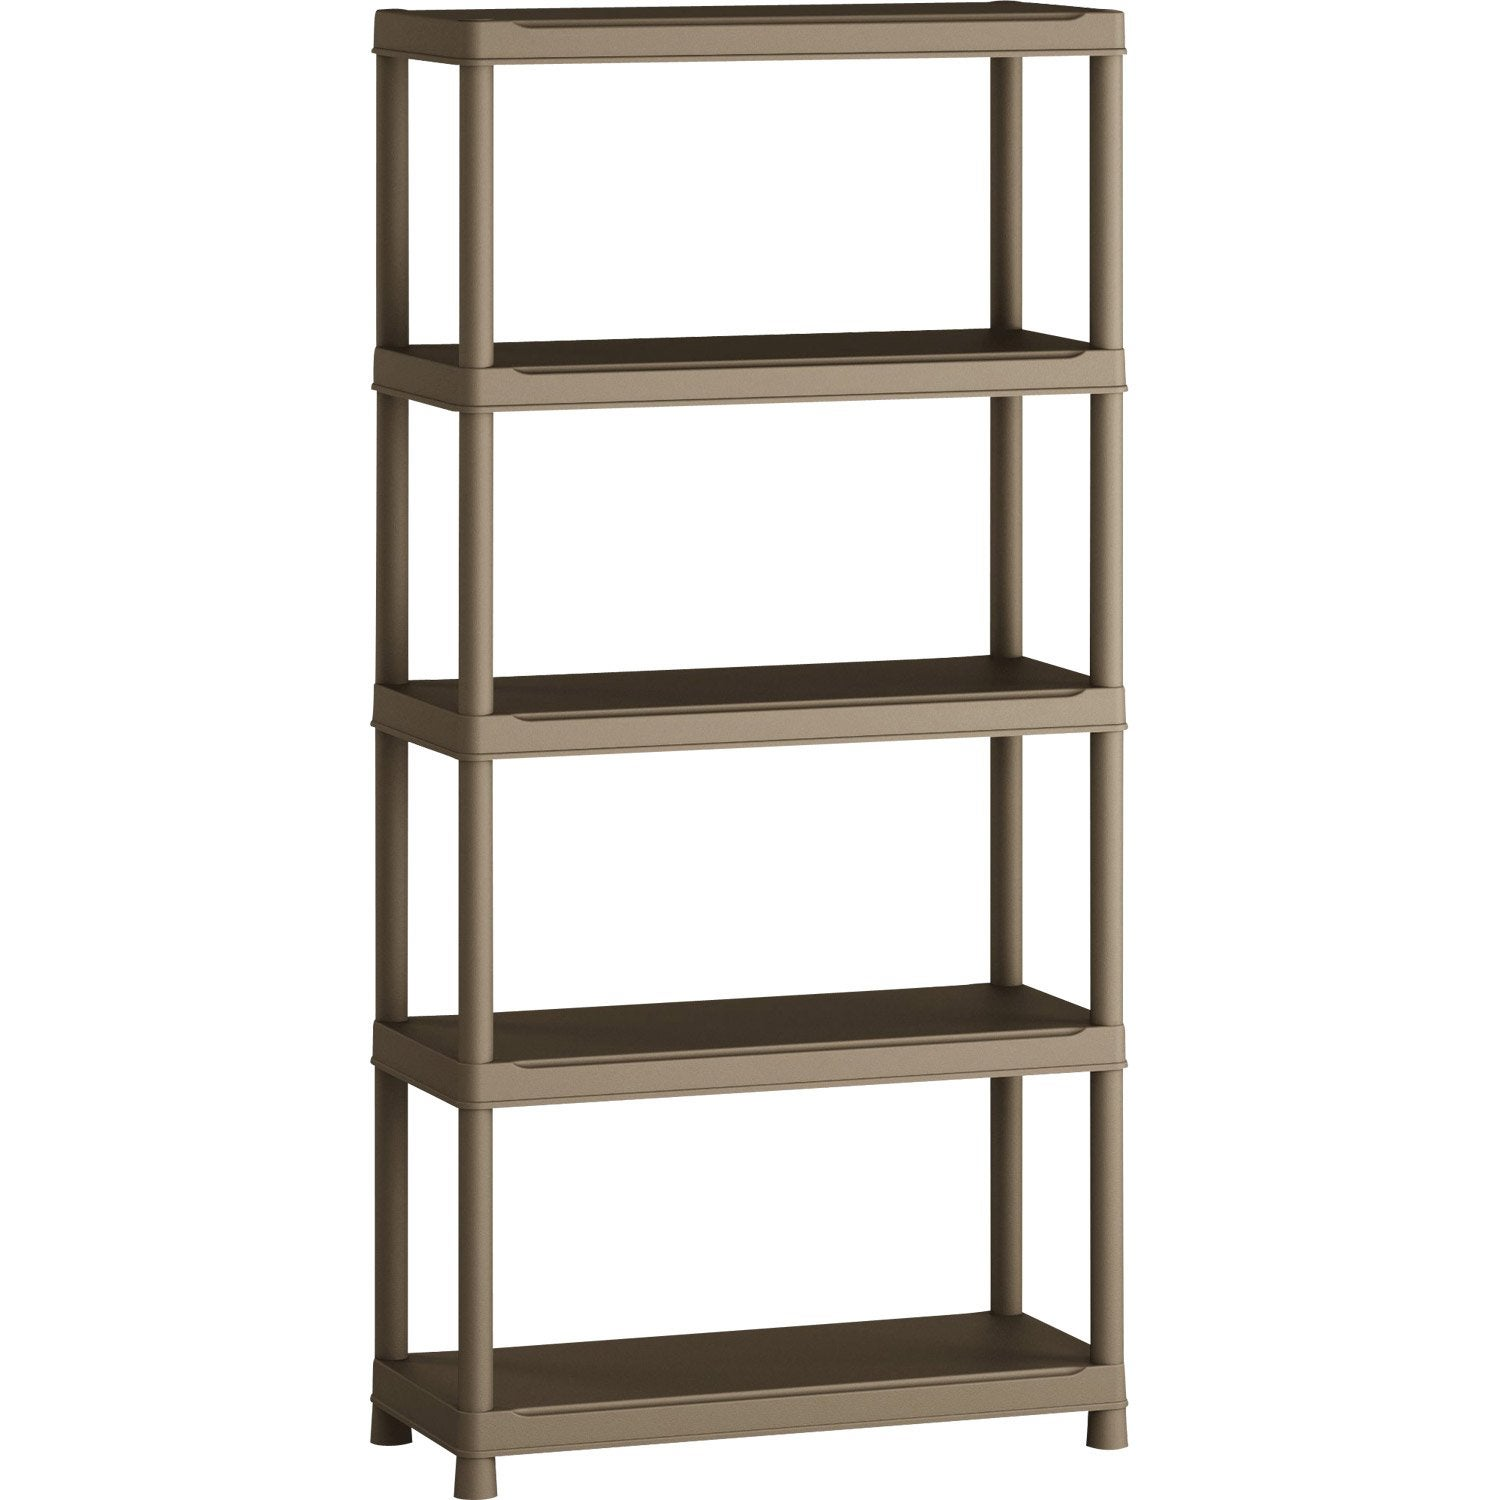 Etag re r sine spaceo 5 tablettes terre l90xh181xp40 cm - Etagere pas chere pour garage ...